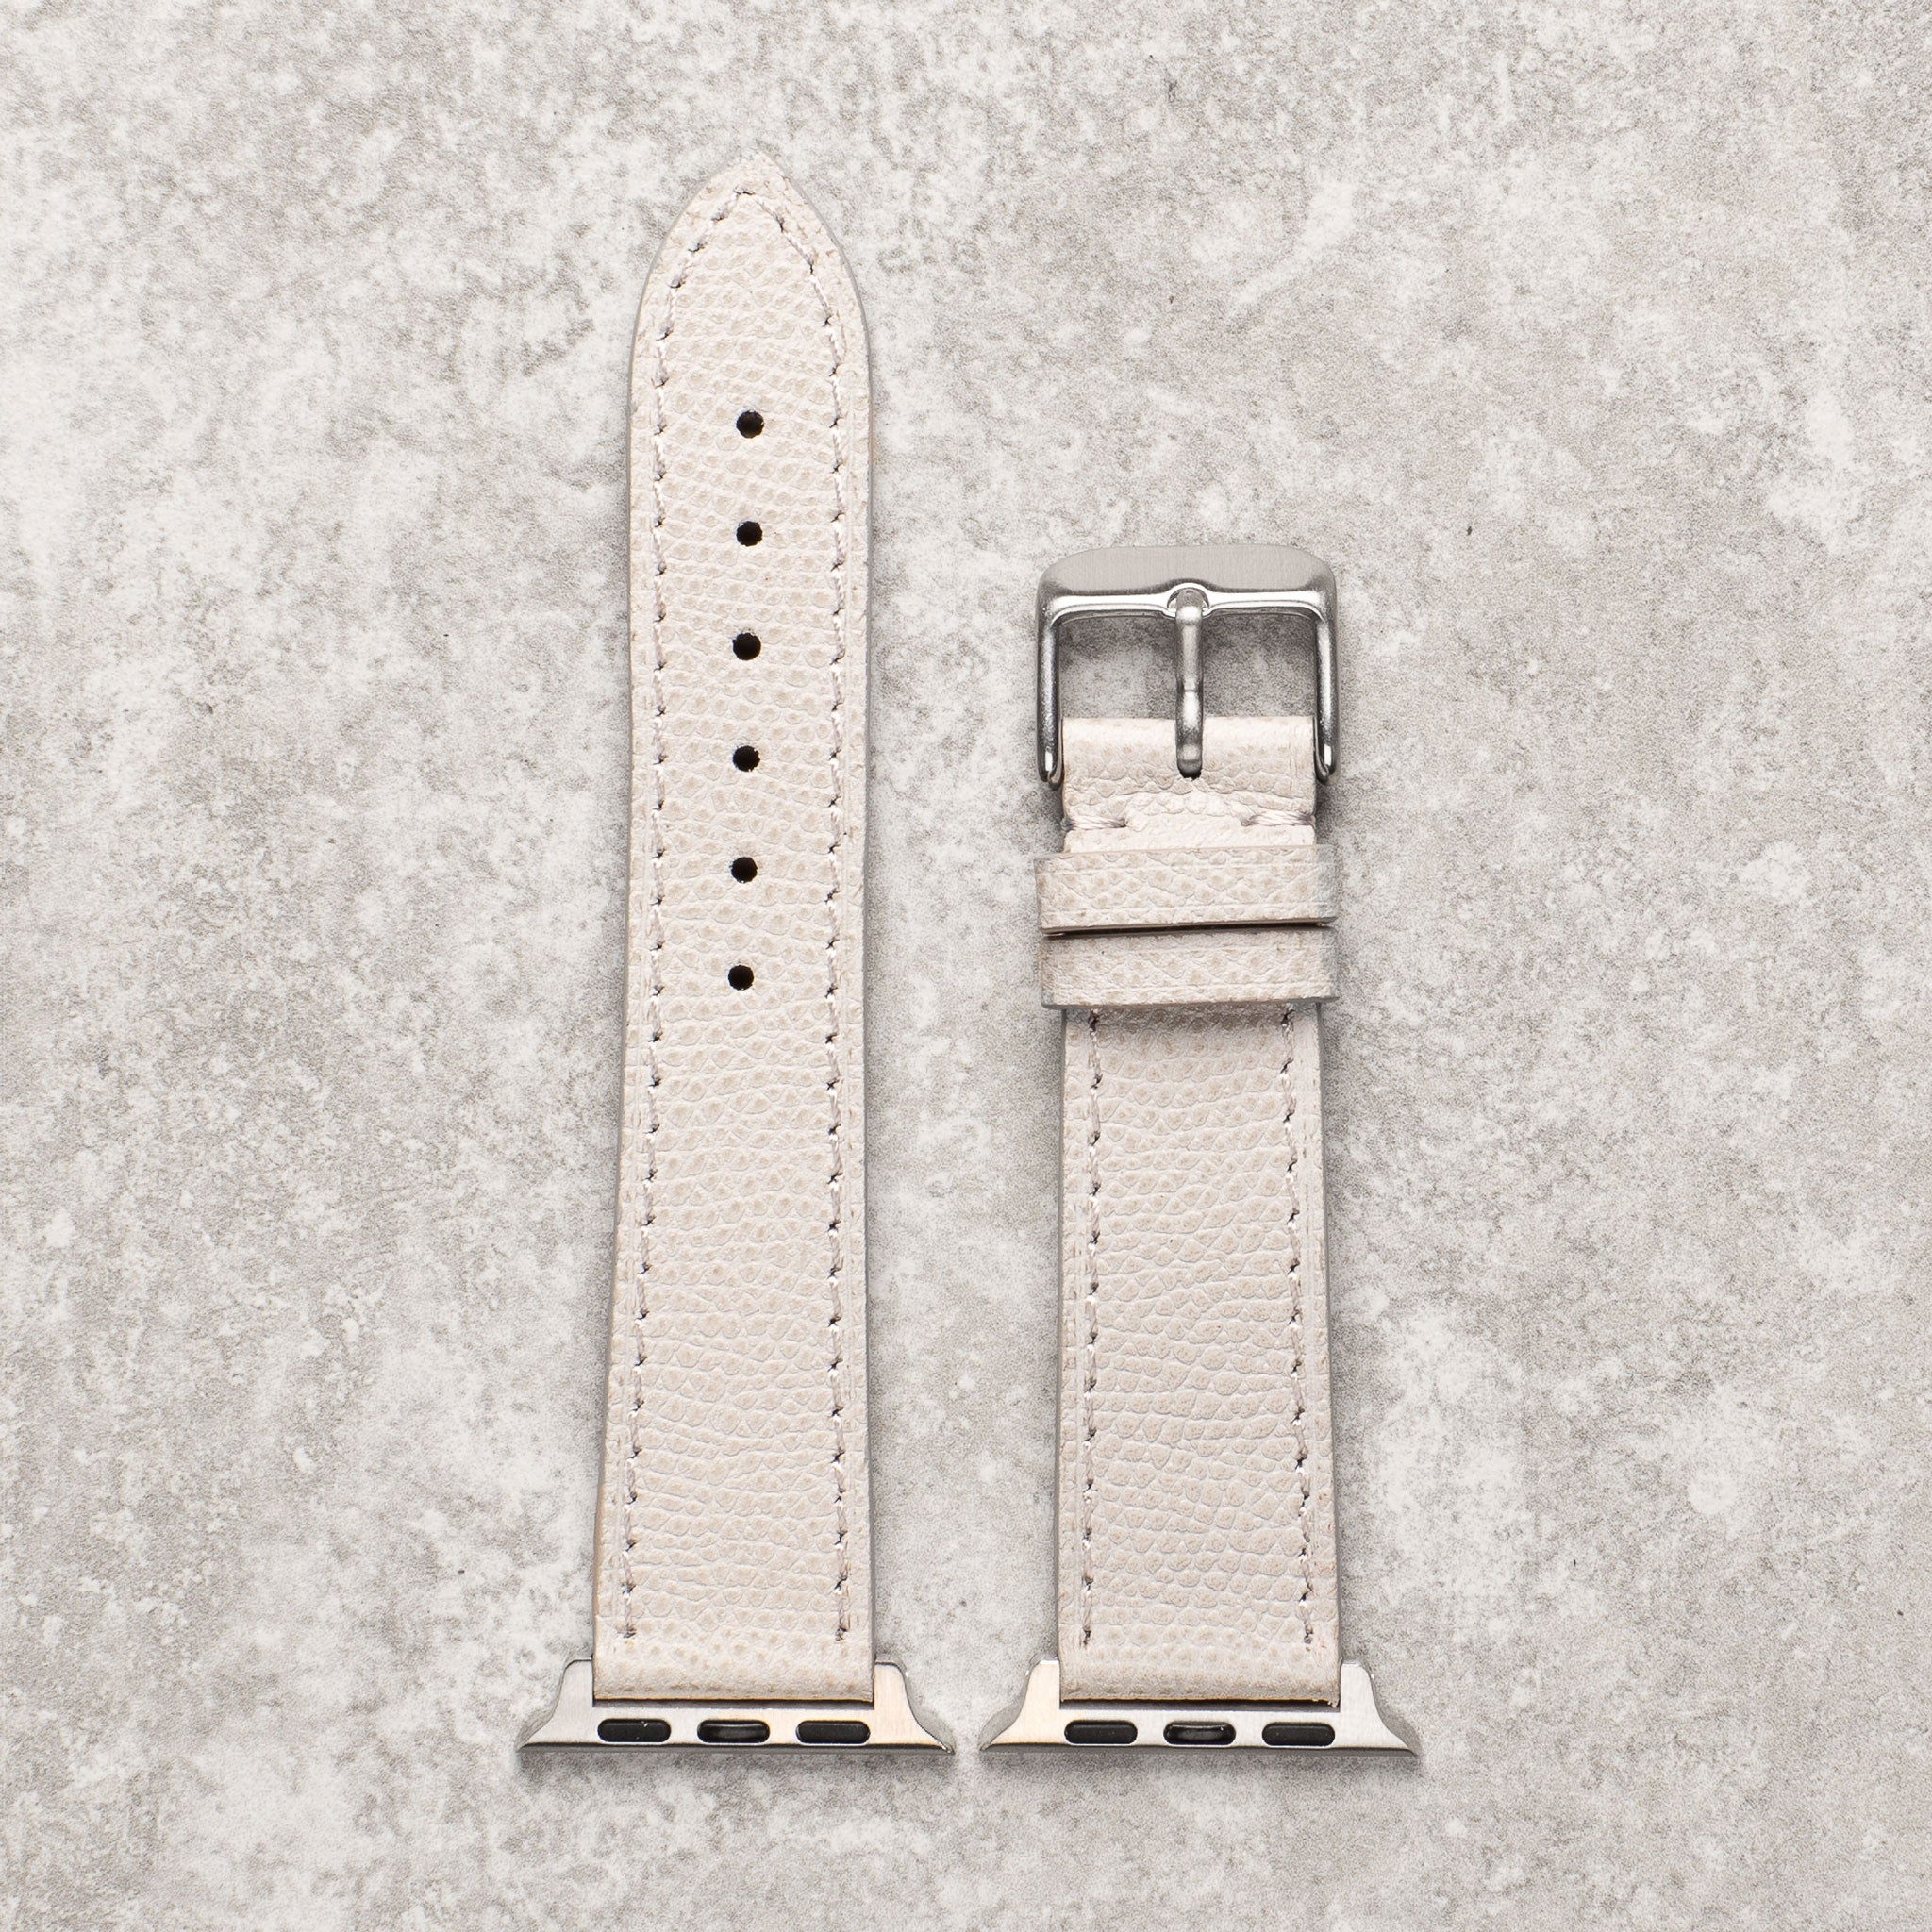 Diametris Apple Watch textured light grey leather replacement strap - Case size 42mm/44mm